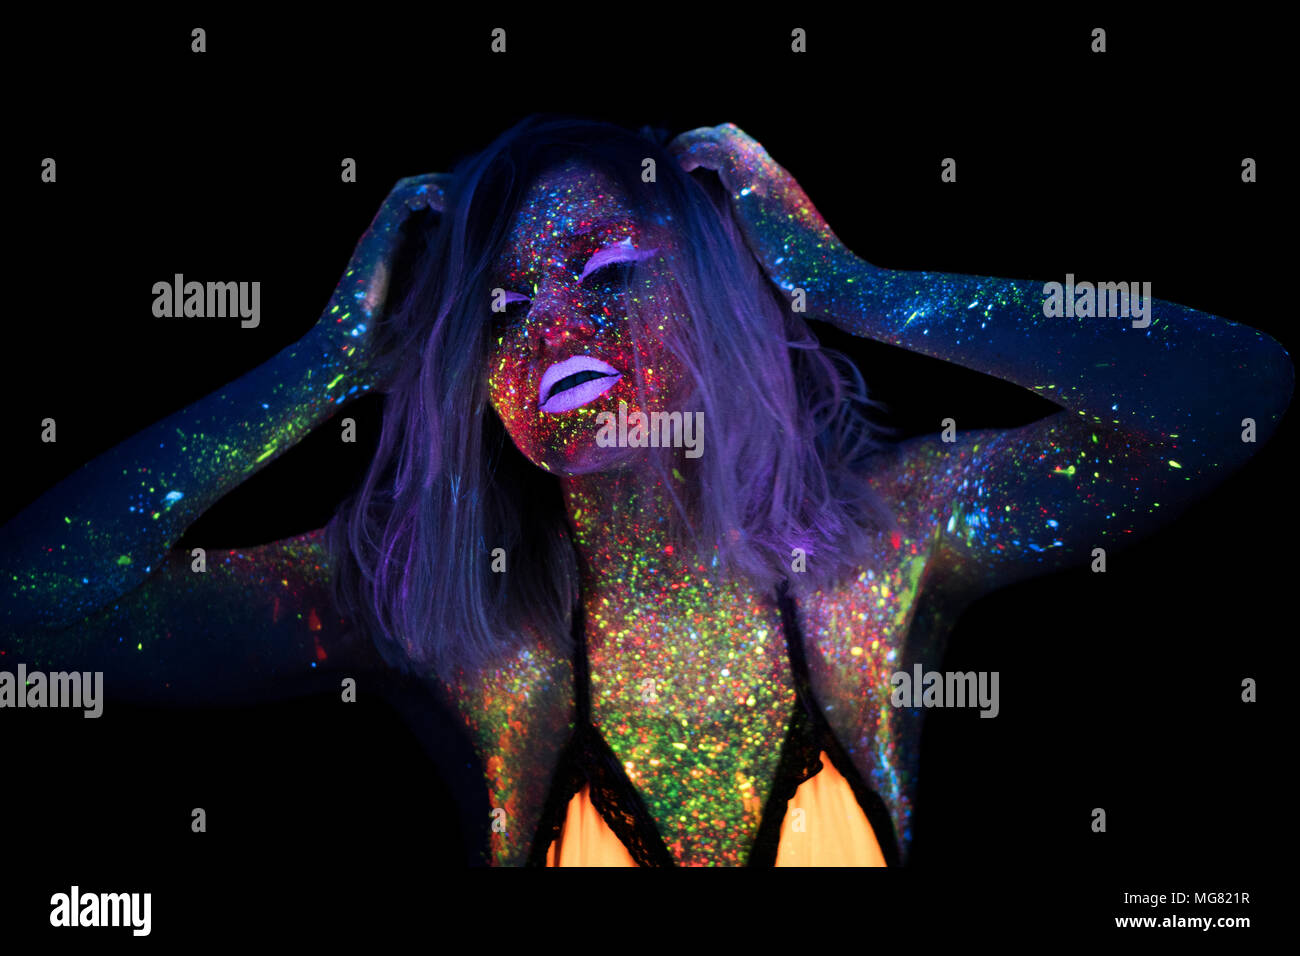 Portrait of Beautiful Fashion Woman in Neon UF Light. Model Girl with Fluorescent Creative Psychedelic MakeUp, Art Design of Female Disco Dancer Model in UV - Stock Image